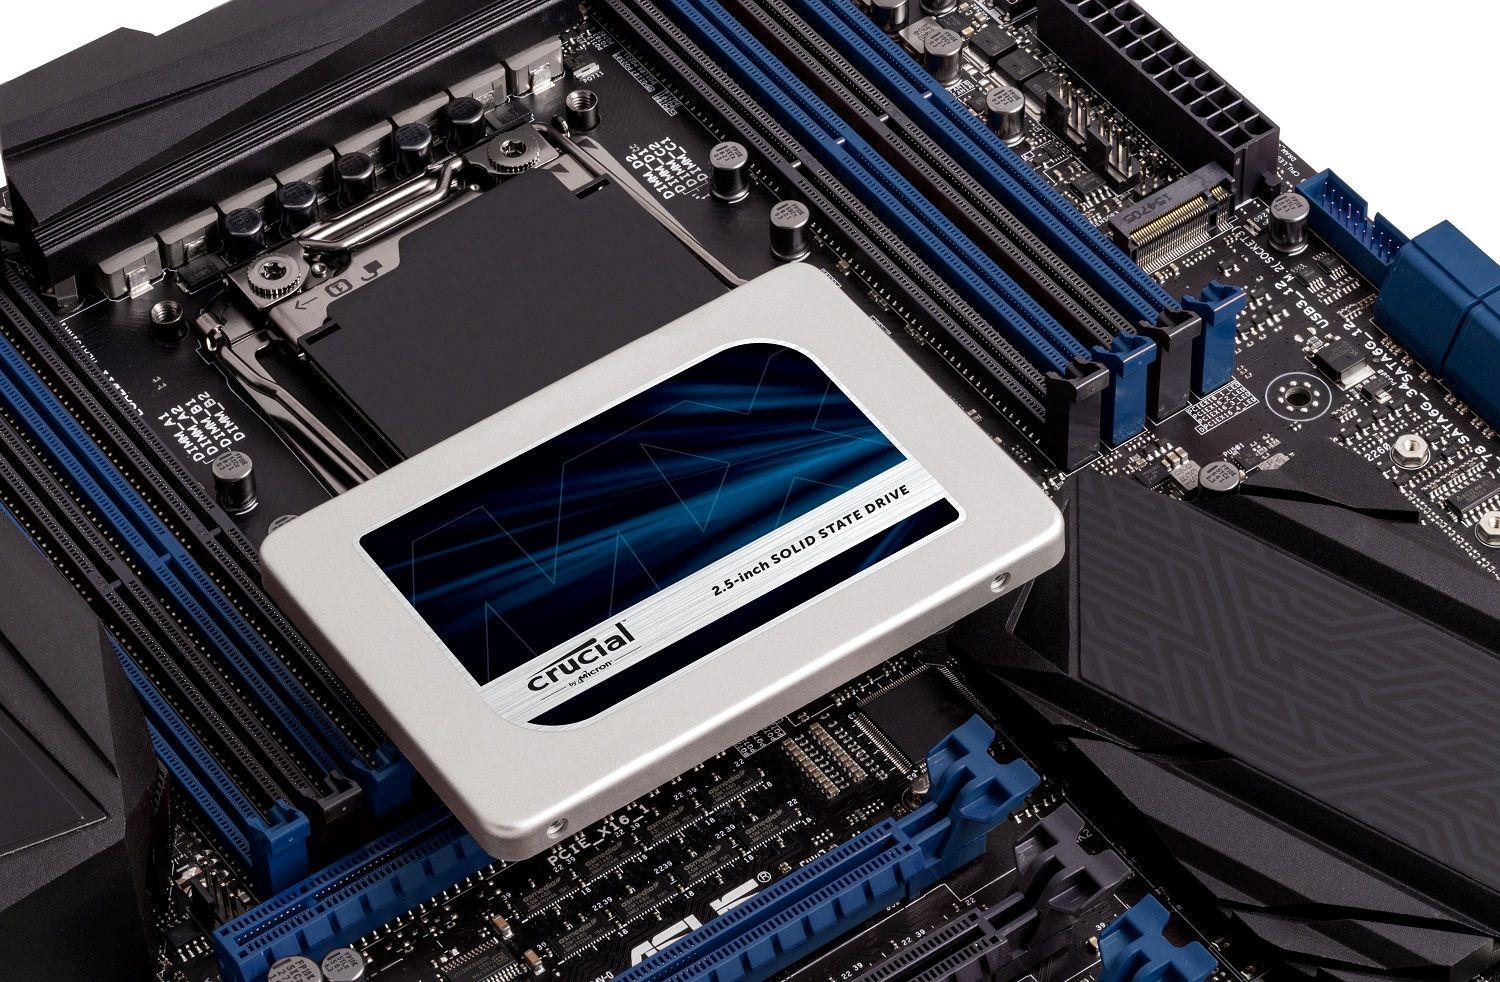 A Crucial SSD placed on top of a motherboard